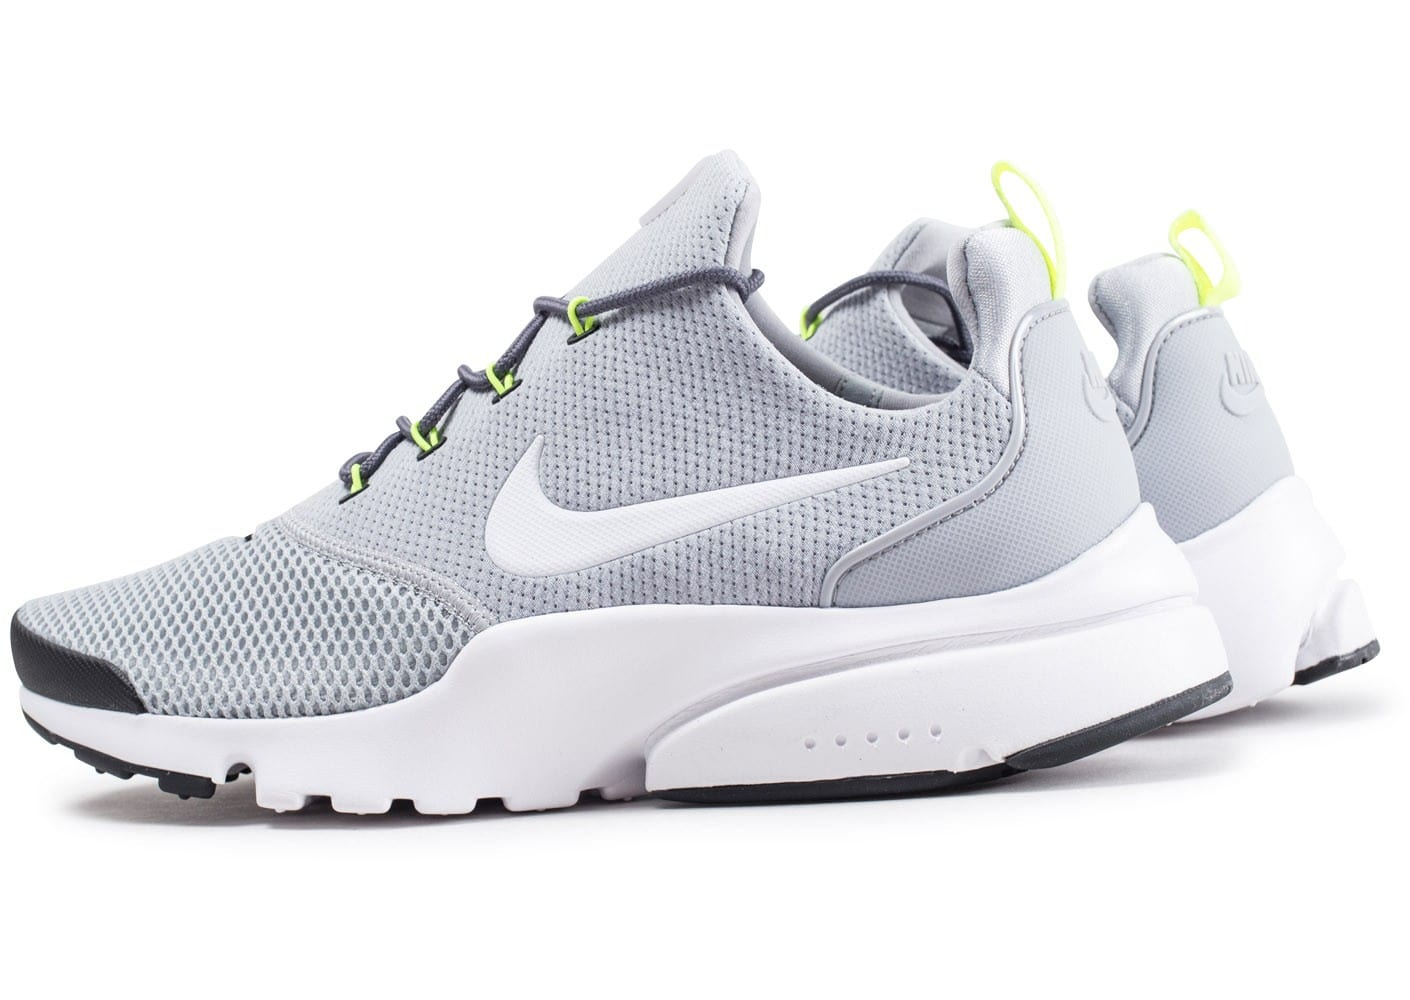 free shipping 7a595 c2bf8 Cliquez pour zoomer Chaussures Nike Presto fly grise et blanche vue  extérieure ...